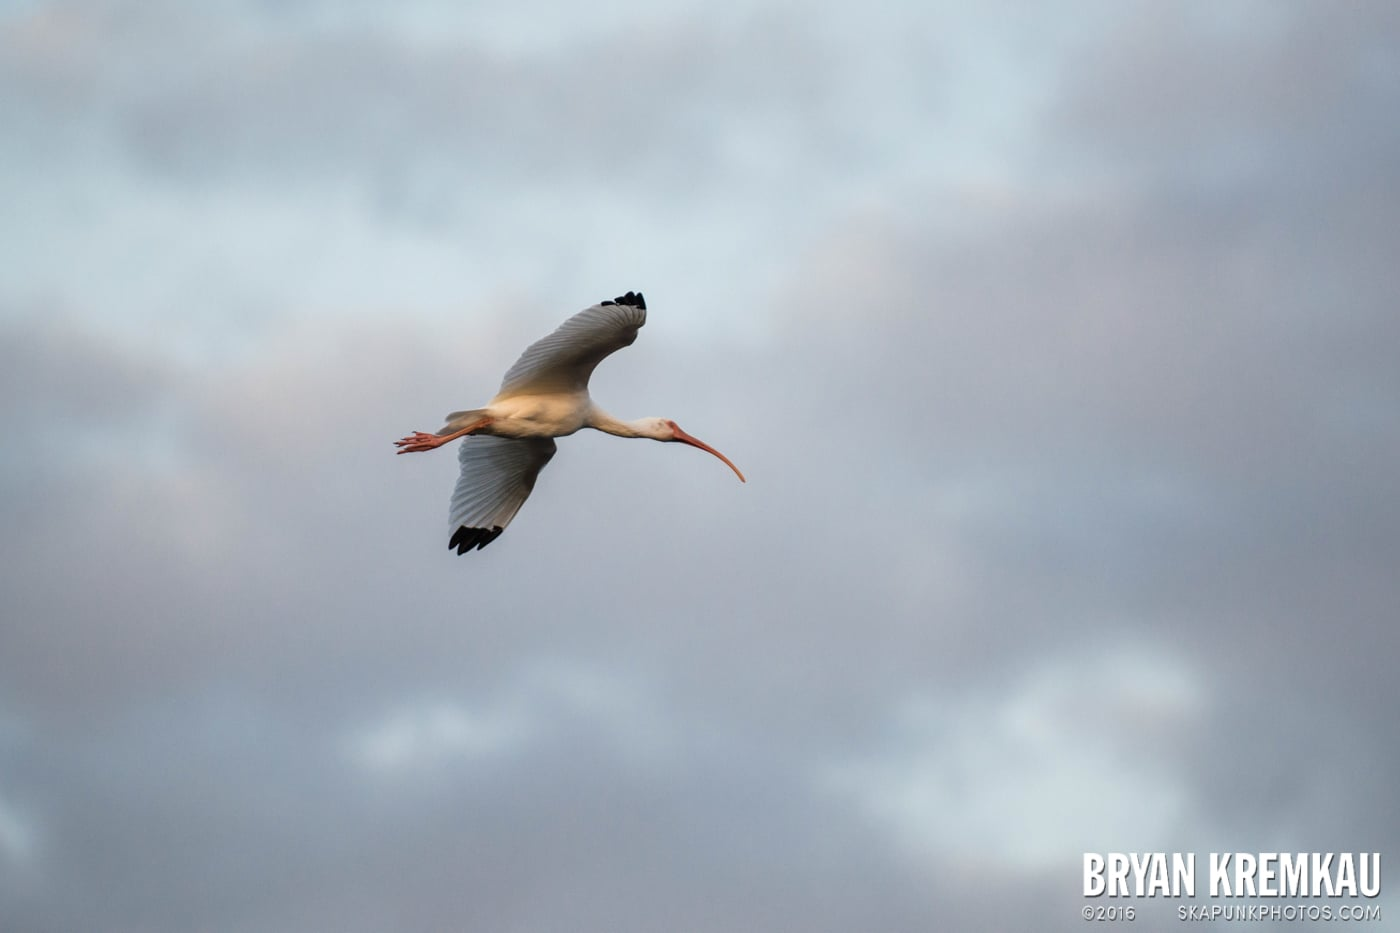 Sunsets, Astrophotography & Birds @ Venice, Florida - 10.25.14 - 11.5.14 (21)